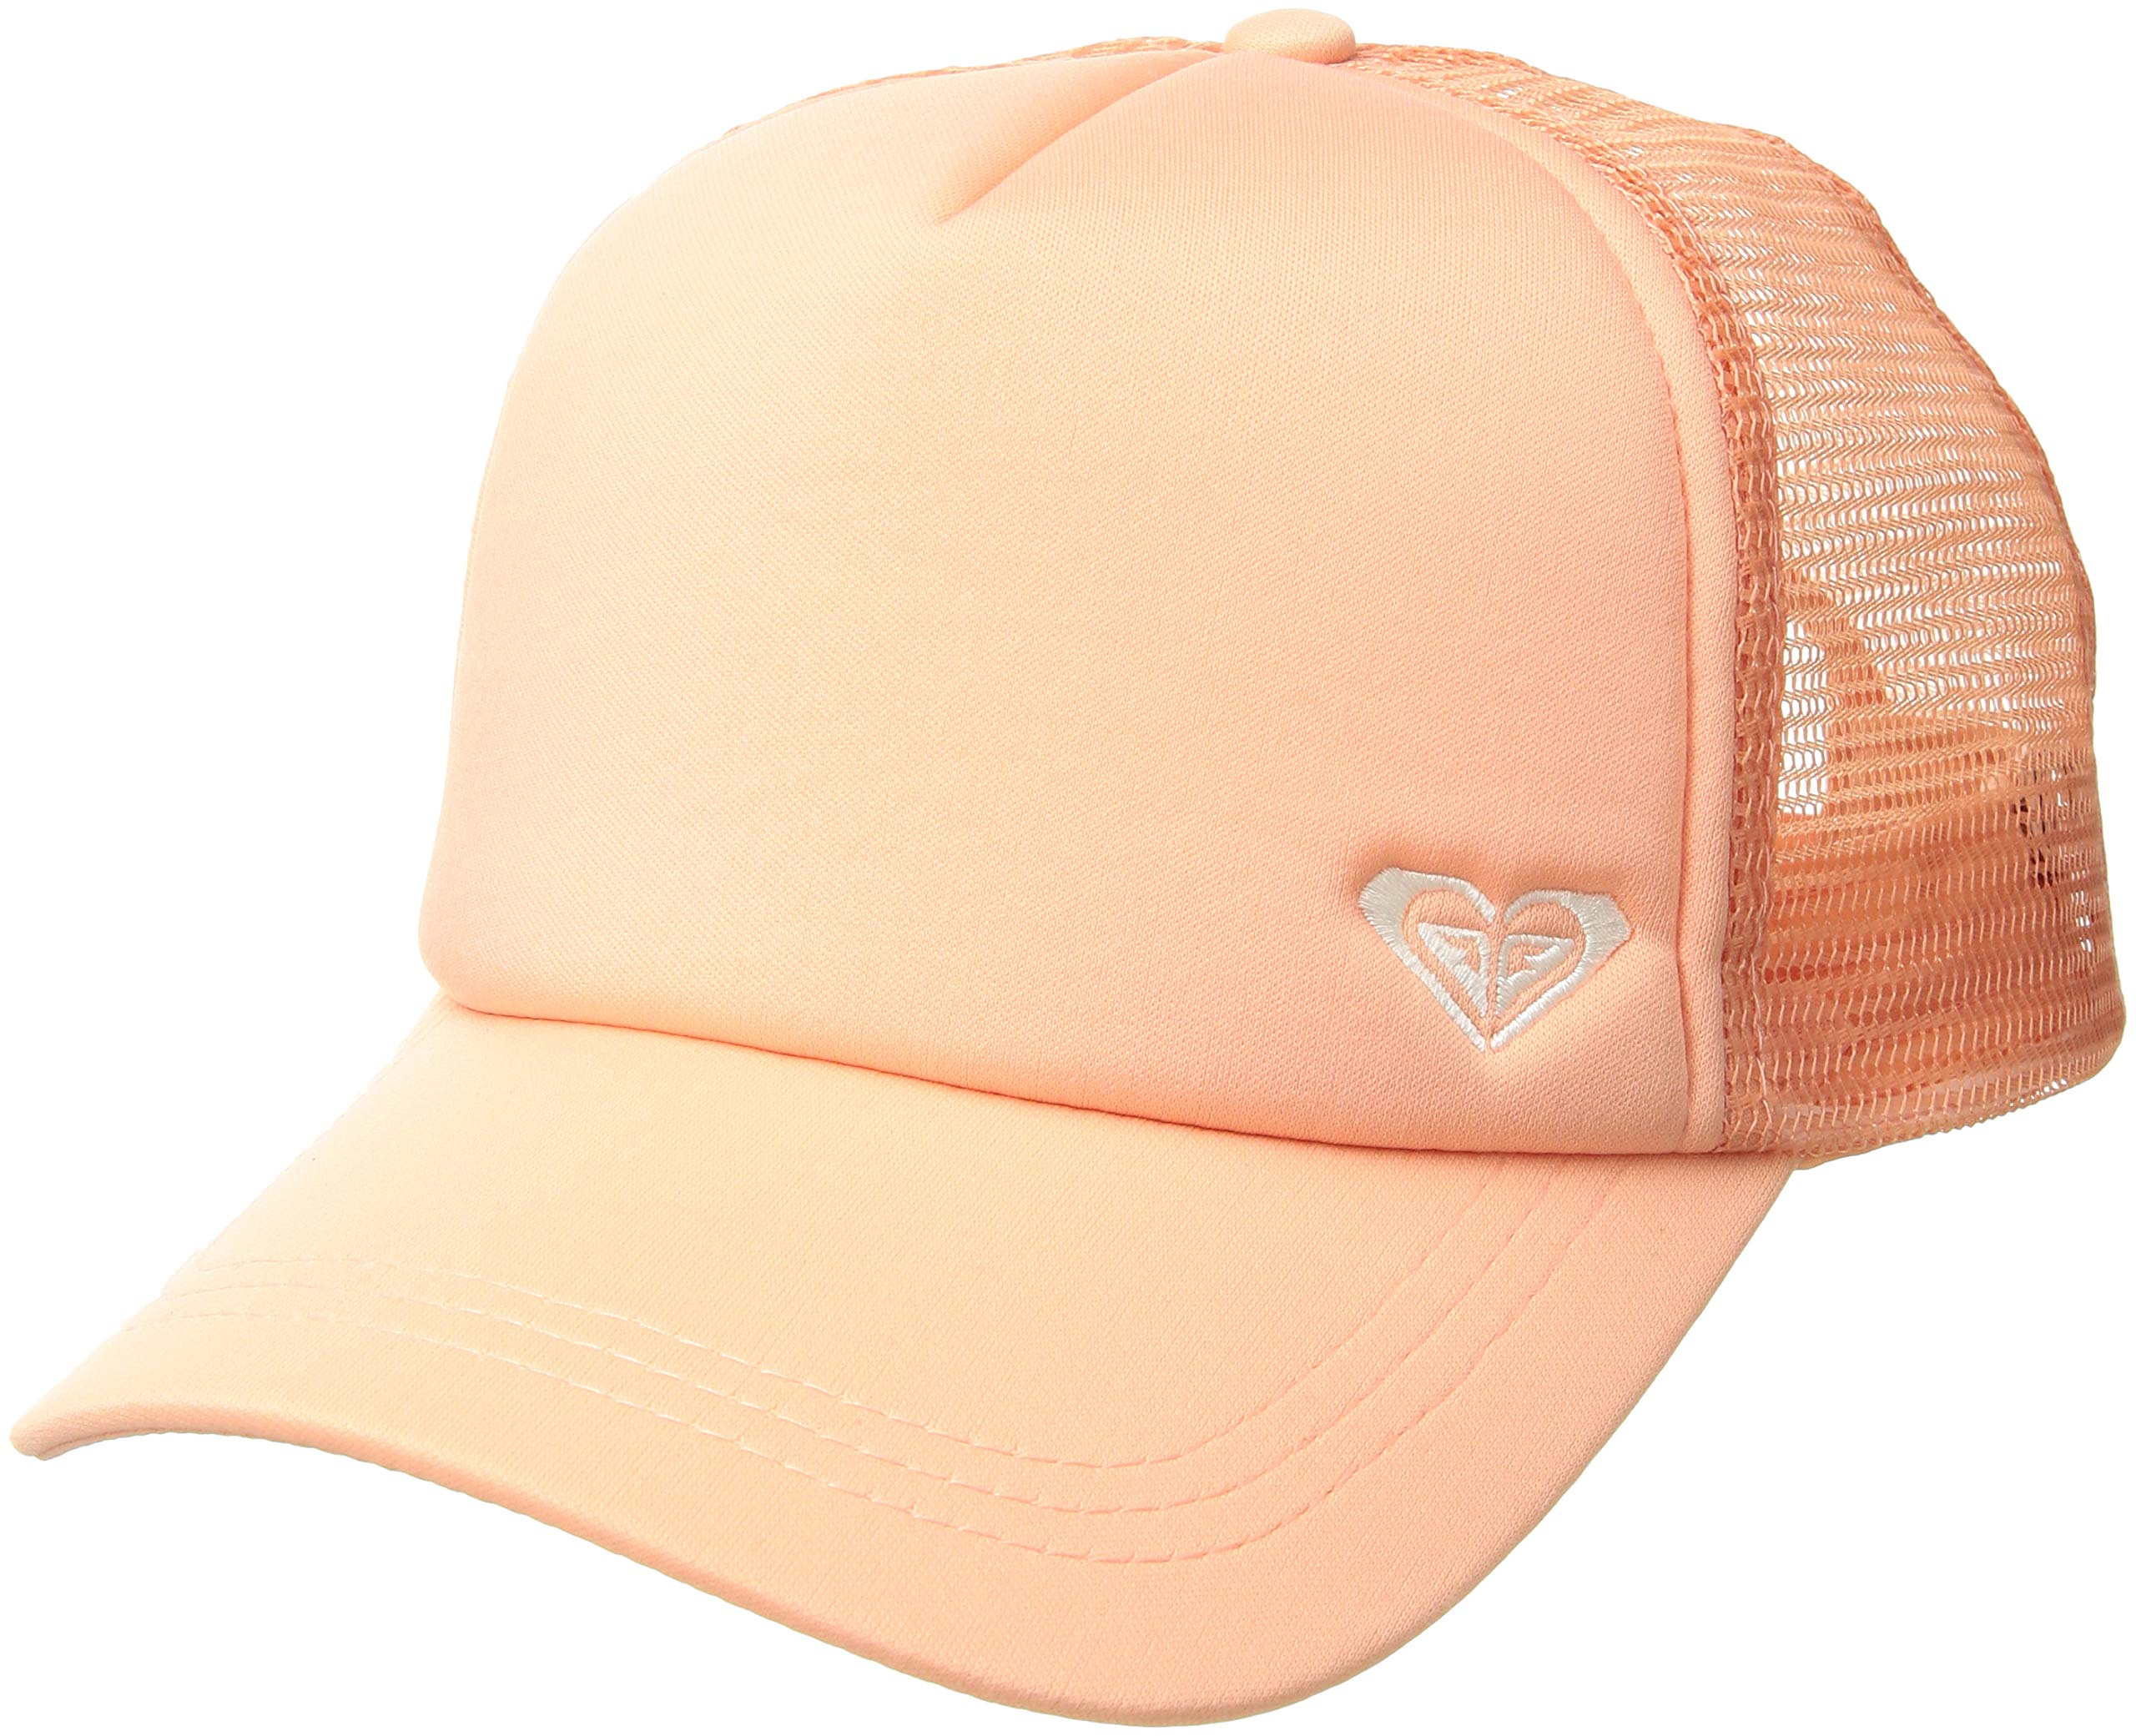 Roxy Women's Finishline Trucker Hat, Souffle, One Size by Roxy (Image #1)